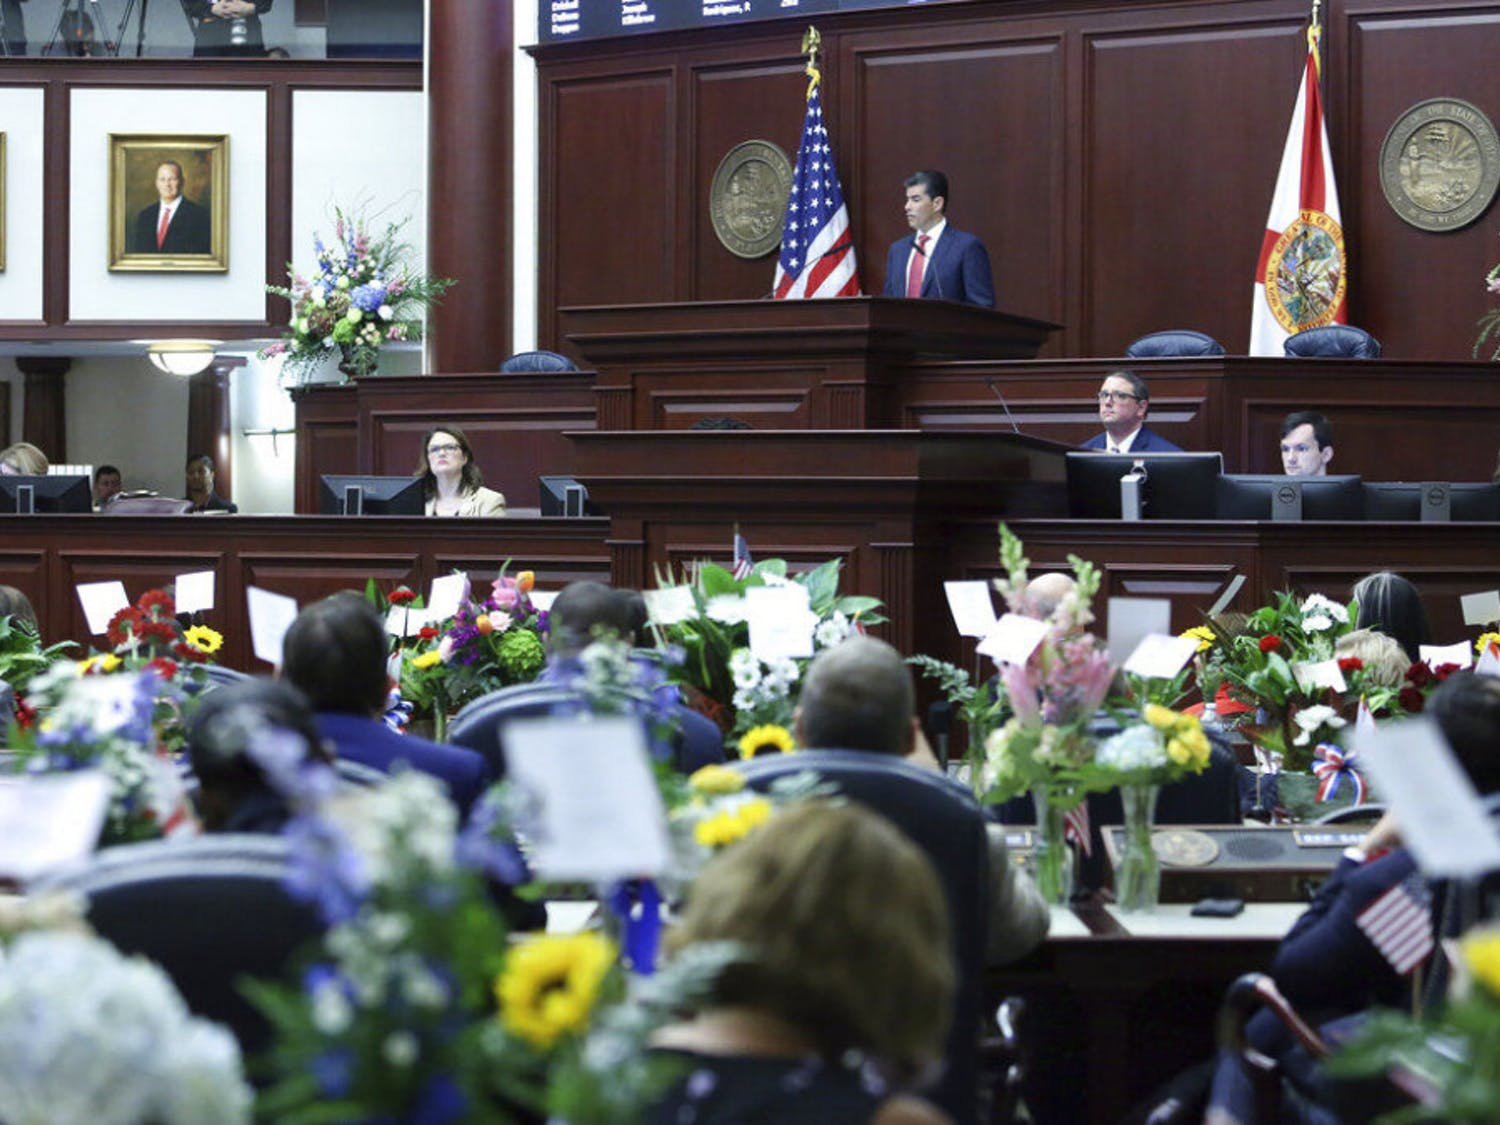 Florida House Speaker Jose Oliva, R-Miami Lakes, center, addresses the House at the start of session on Tuesday Jan. 14, 2020, in Tallahassee, Fla. (AP Photo/Steve Cannon)